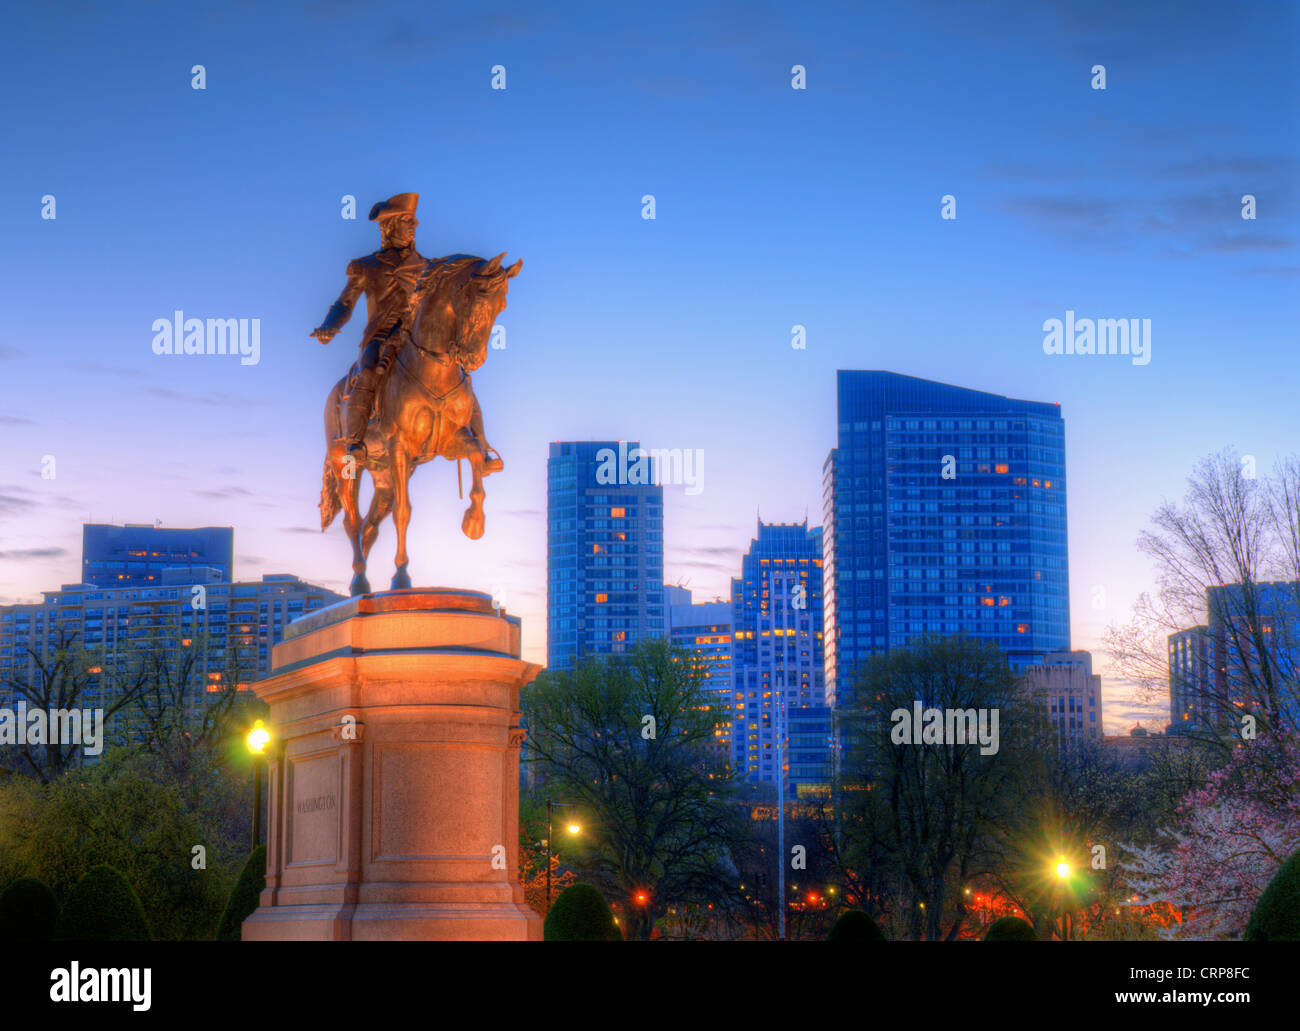 George Washington Reiterstandbild im Public Garden in Boston, Massachusetts. Stockbild